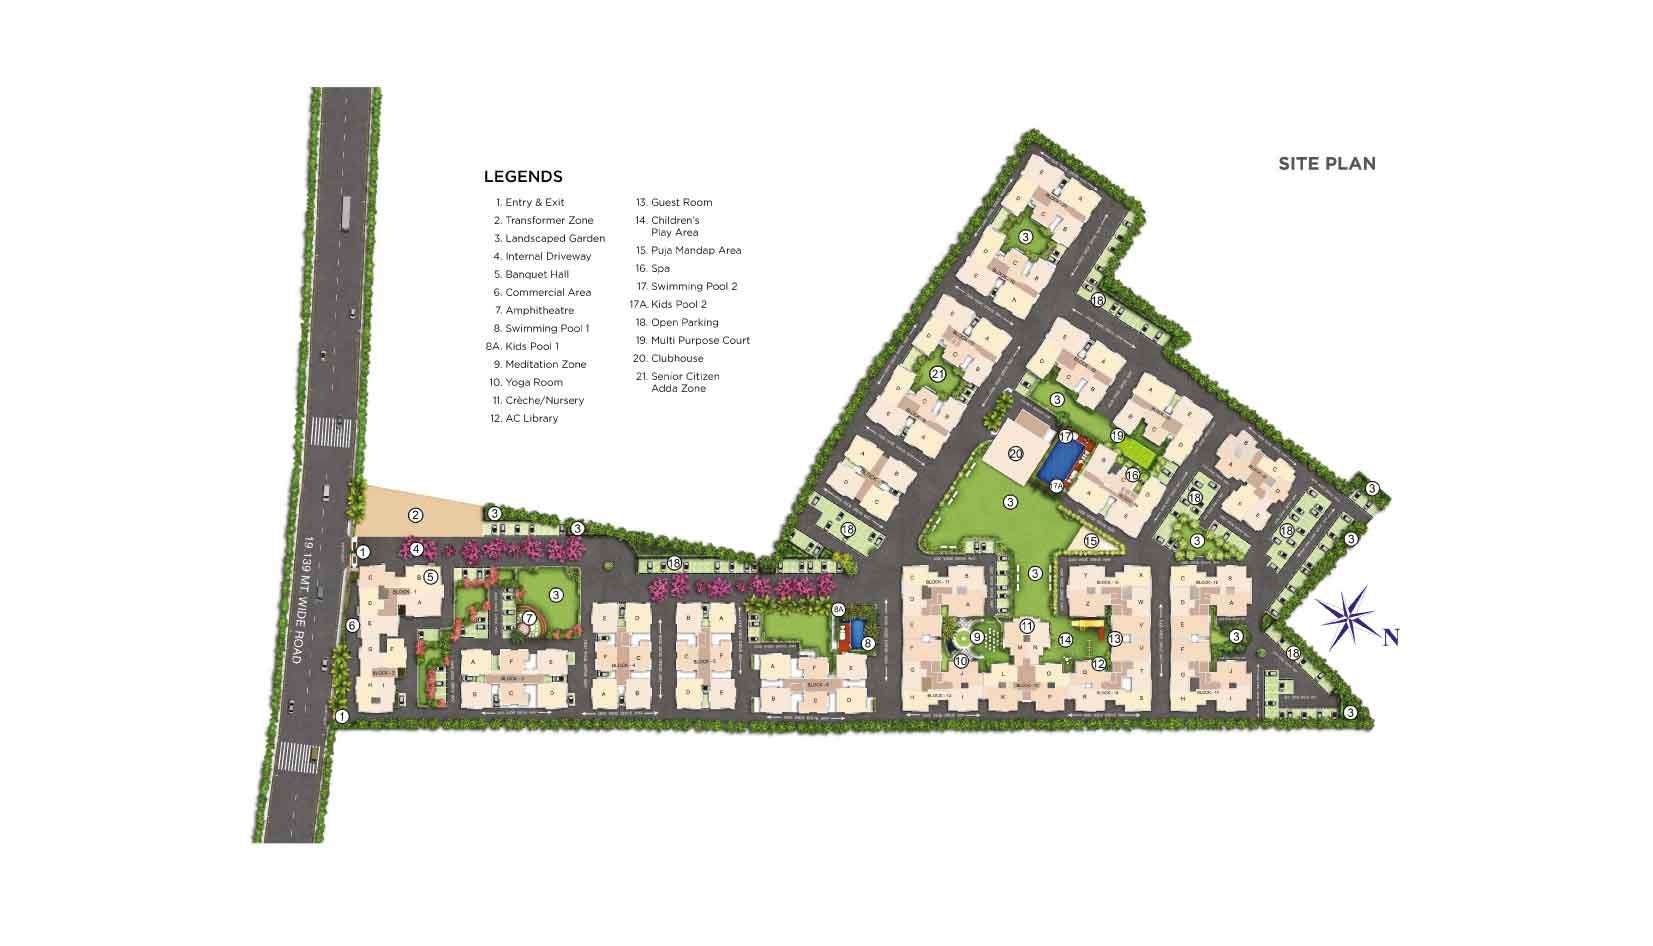 PS-Majhergaon-Site-Plan